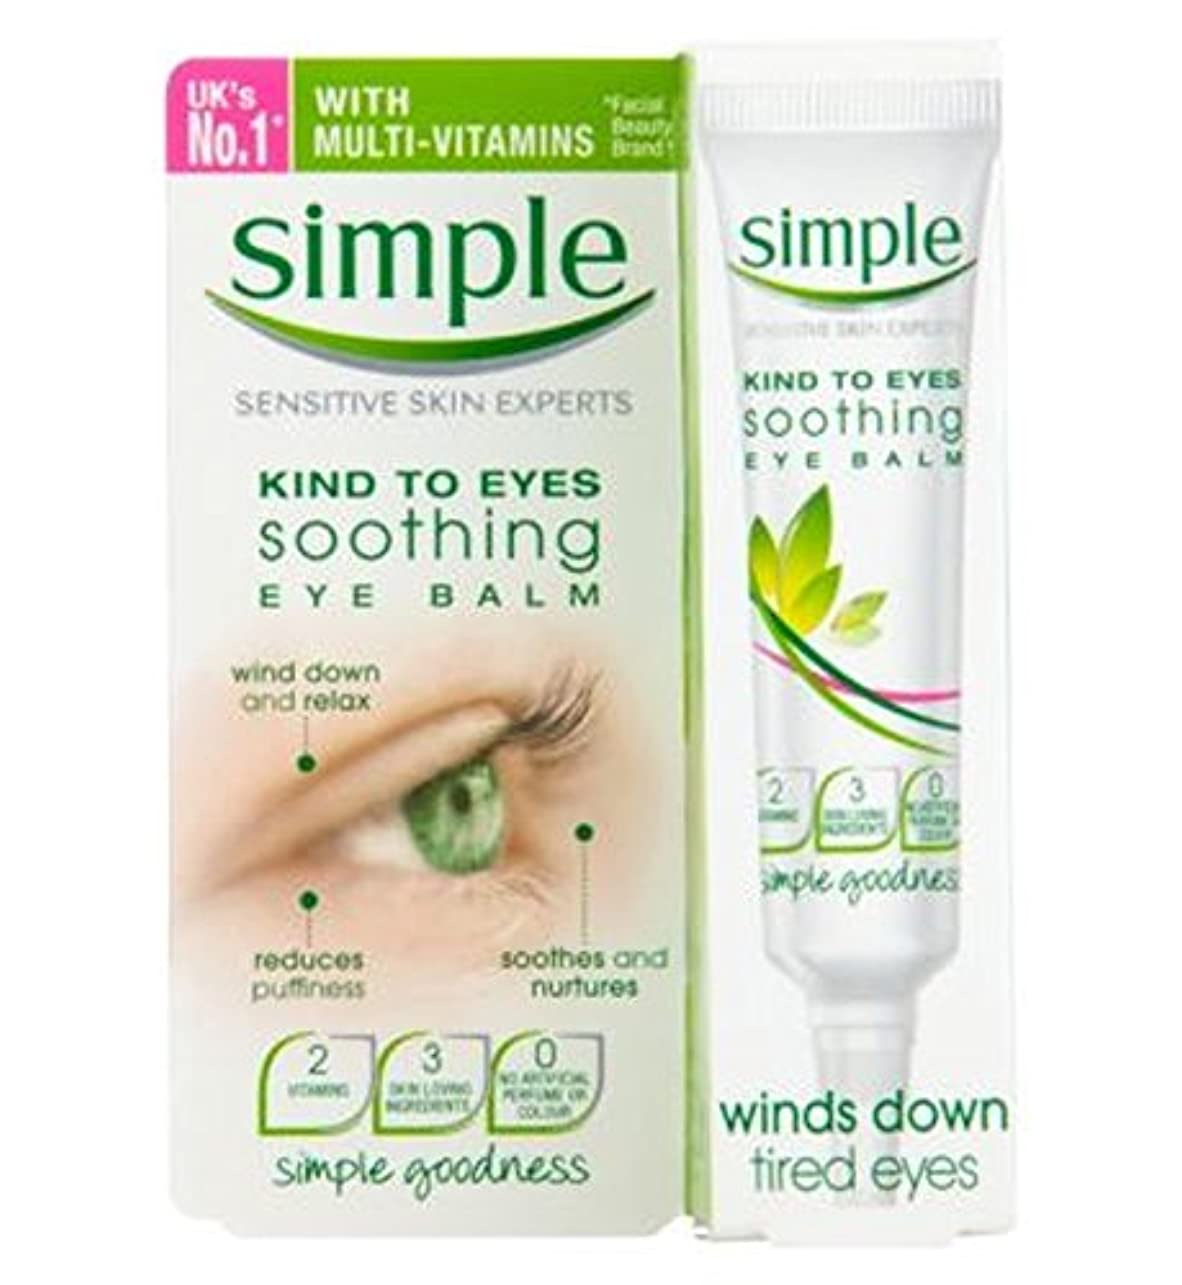 Simple Kind To Eyes Soothing Eye Balm 15ml - 目への単純な親切な落ち着いたアイクリーム15ミリリットル (Simple) [並行輸入品]